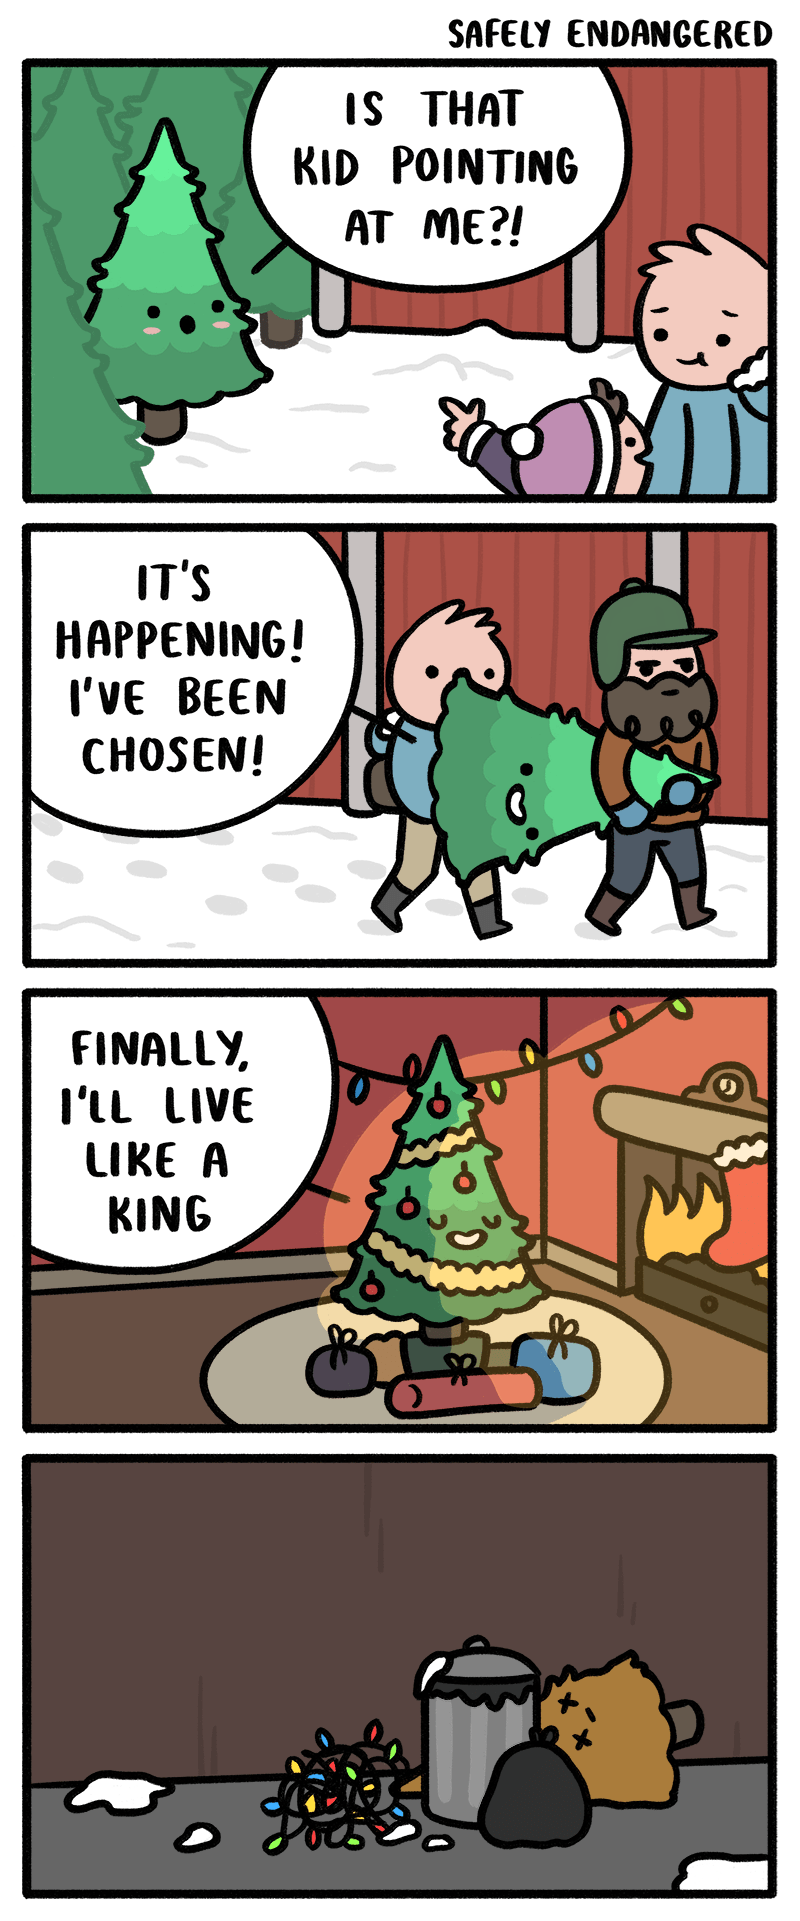 Sad christmas christmas tree web comics - 8597781248